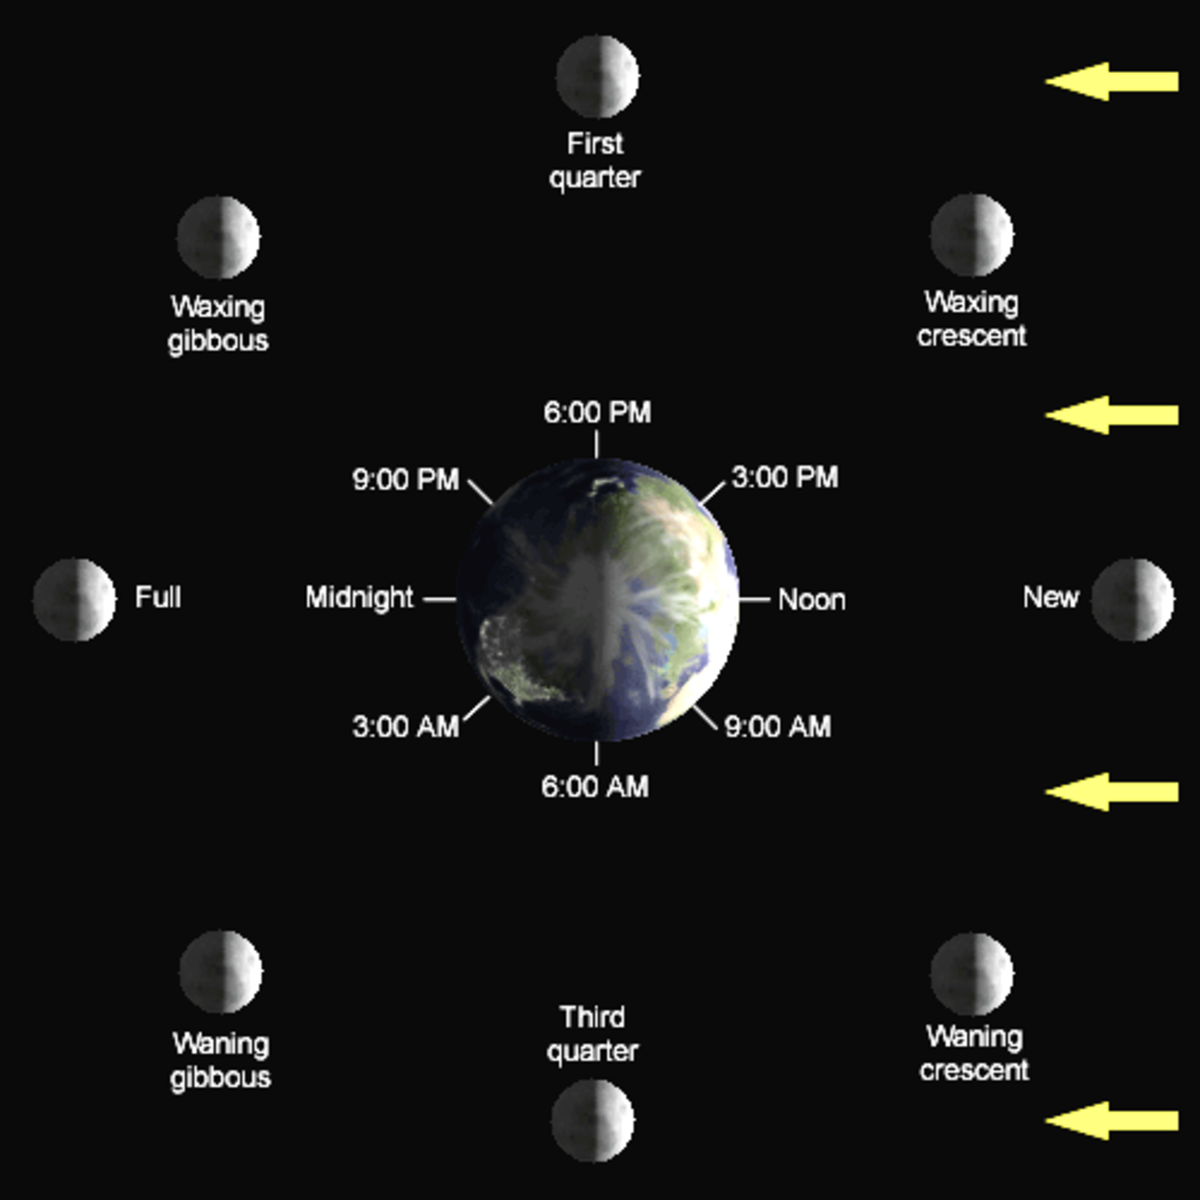 Diagram of lunar phases.